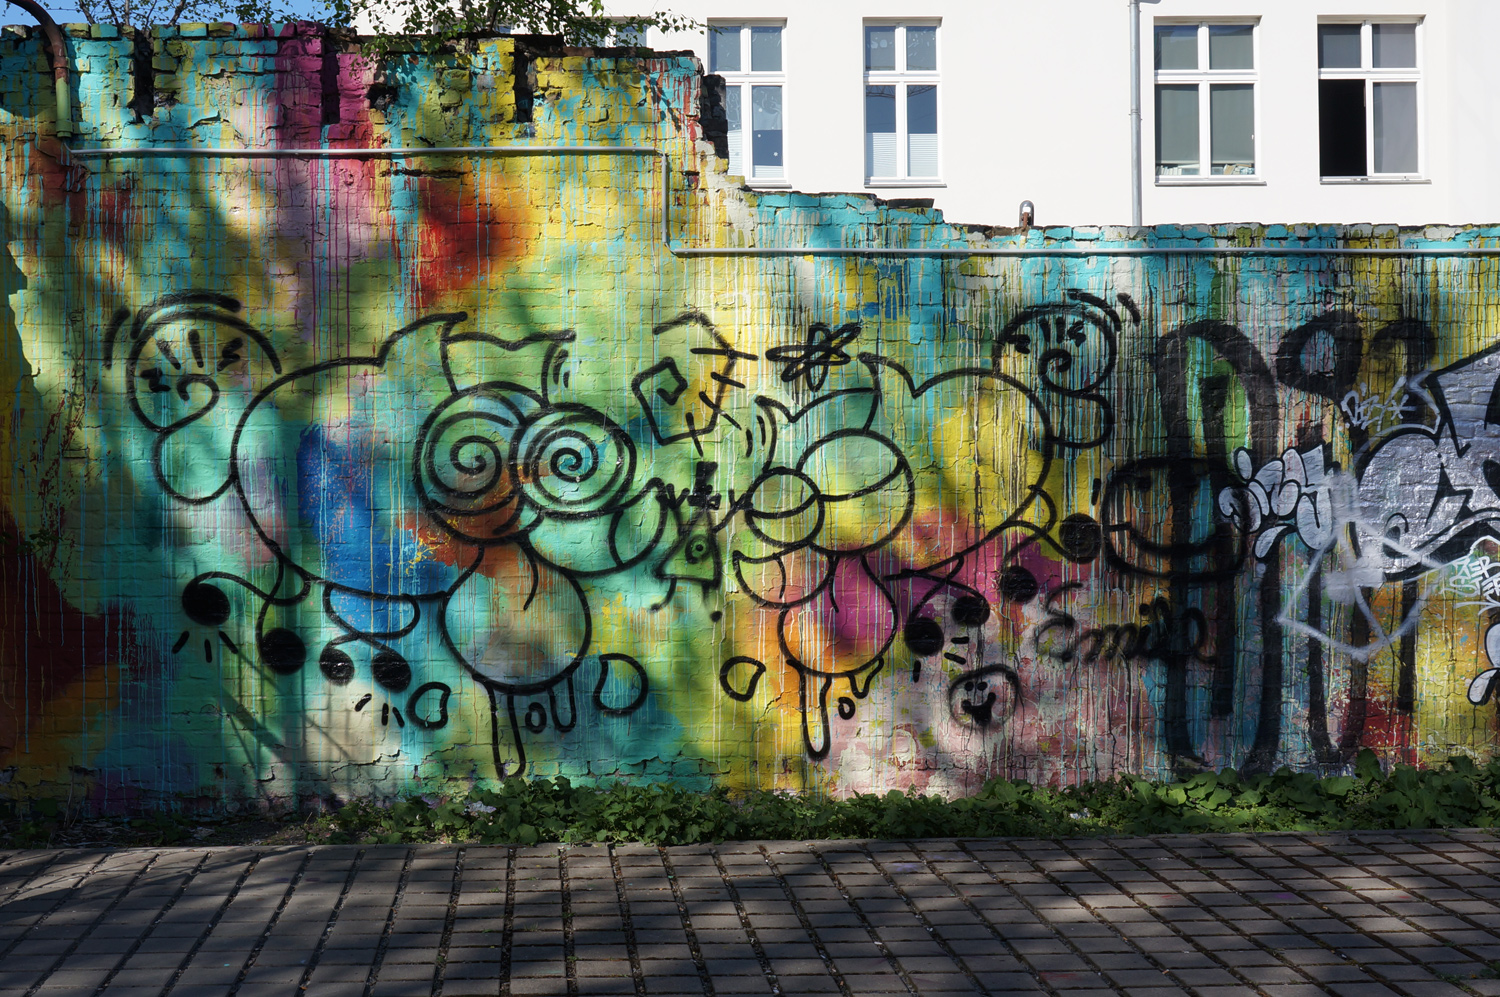 Wall with light and shadow, Berlin 2018